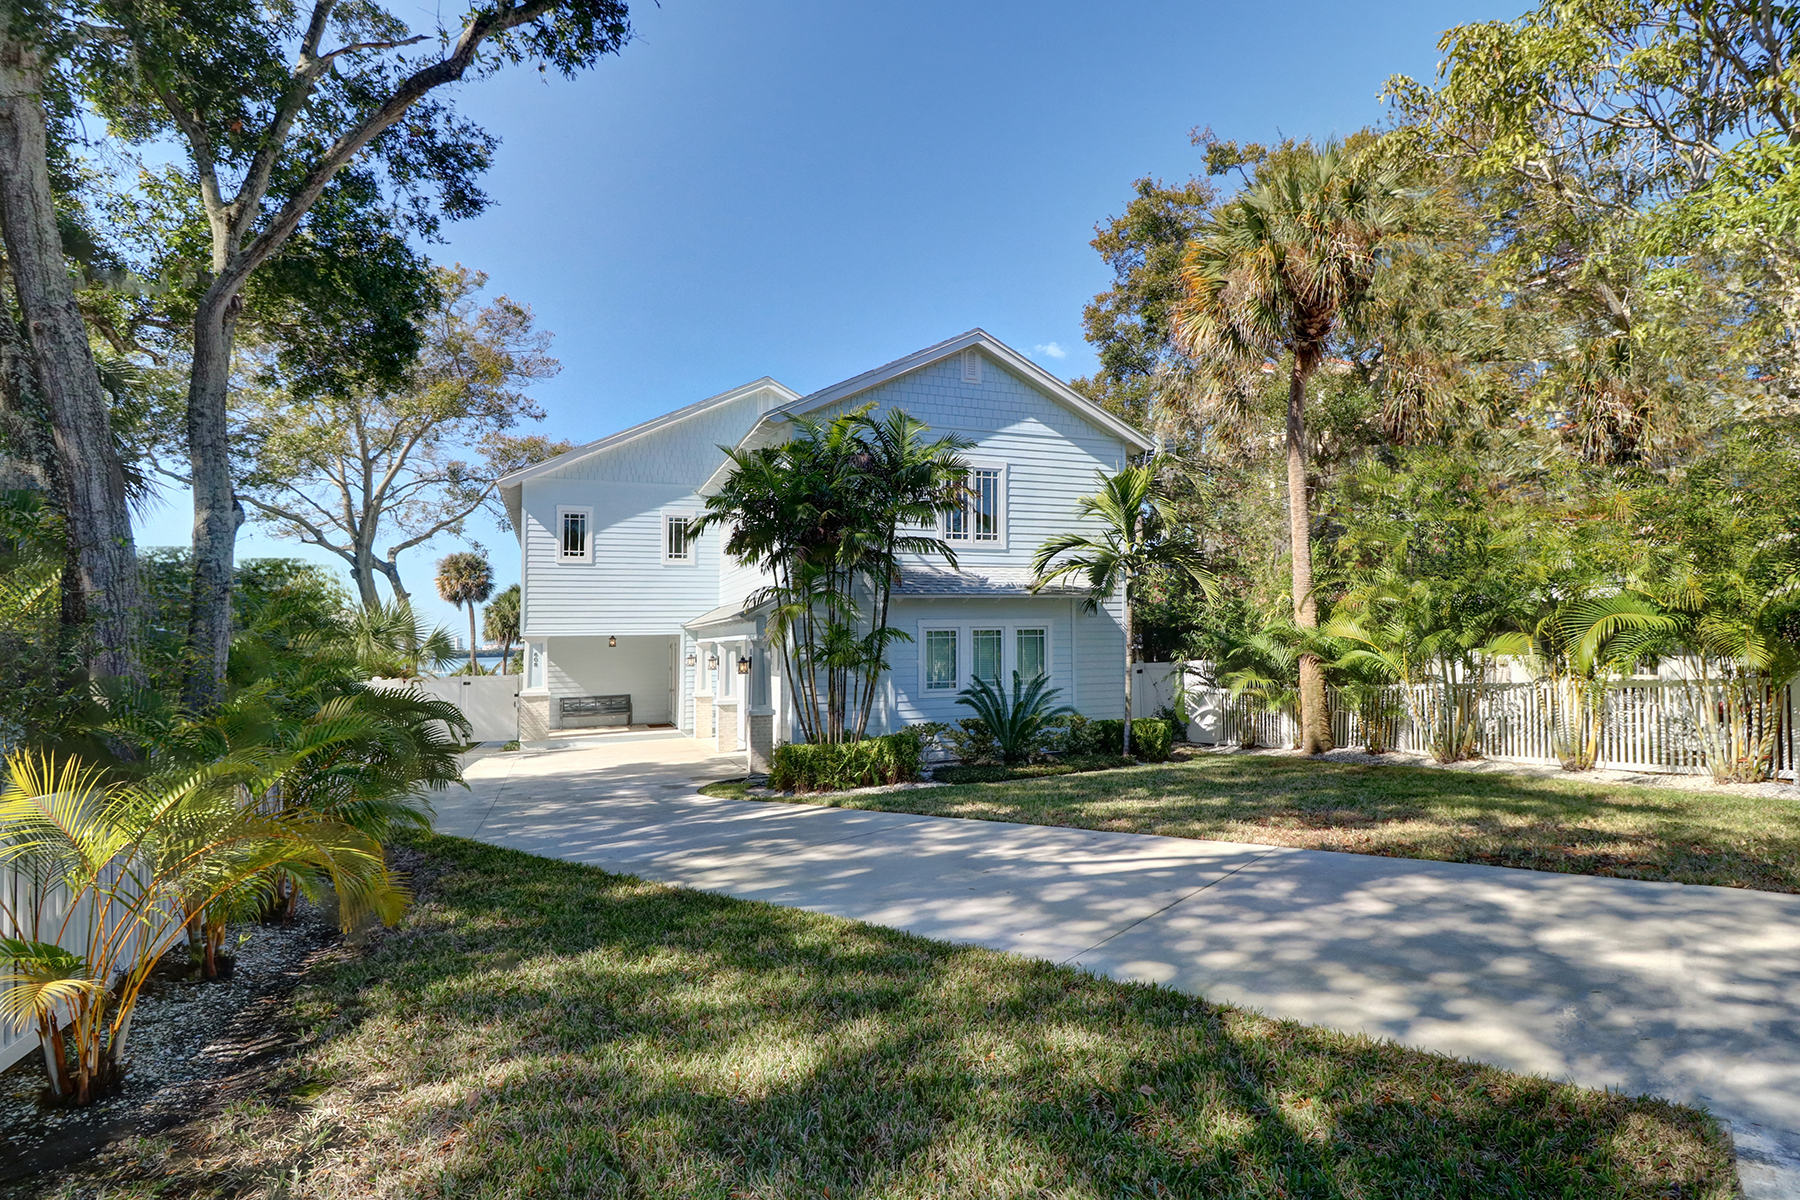 Single Family Home for Sale at CLEARWATER 608 N Osceola Ave Clearwater, Florida, 33755 United States